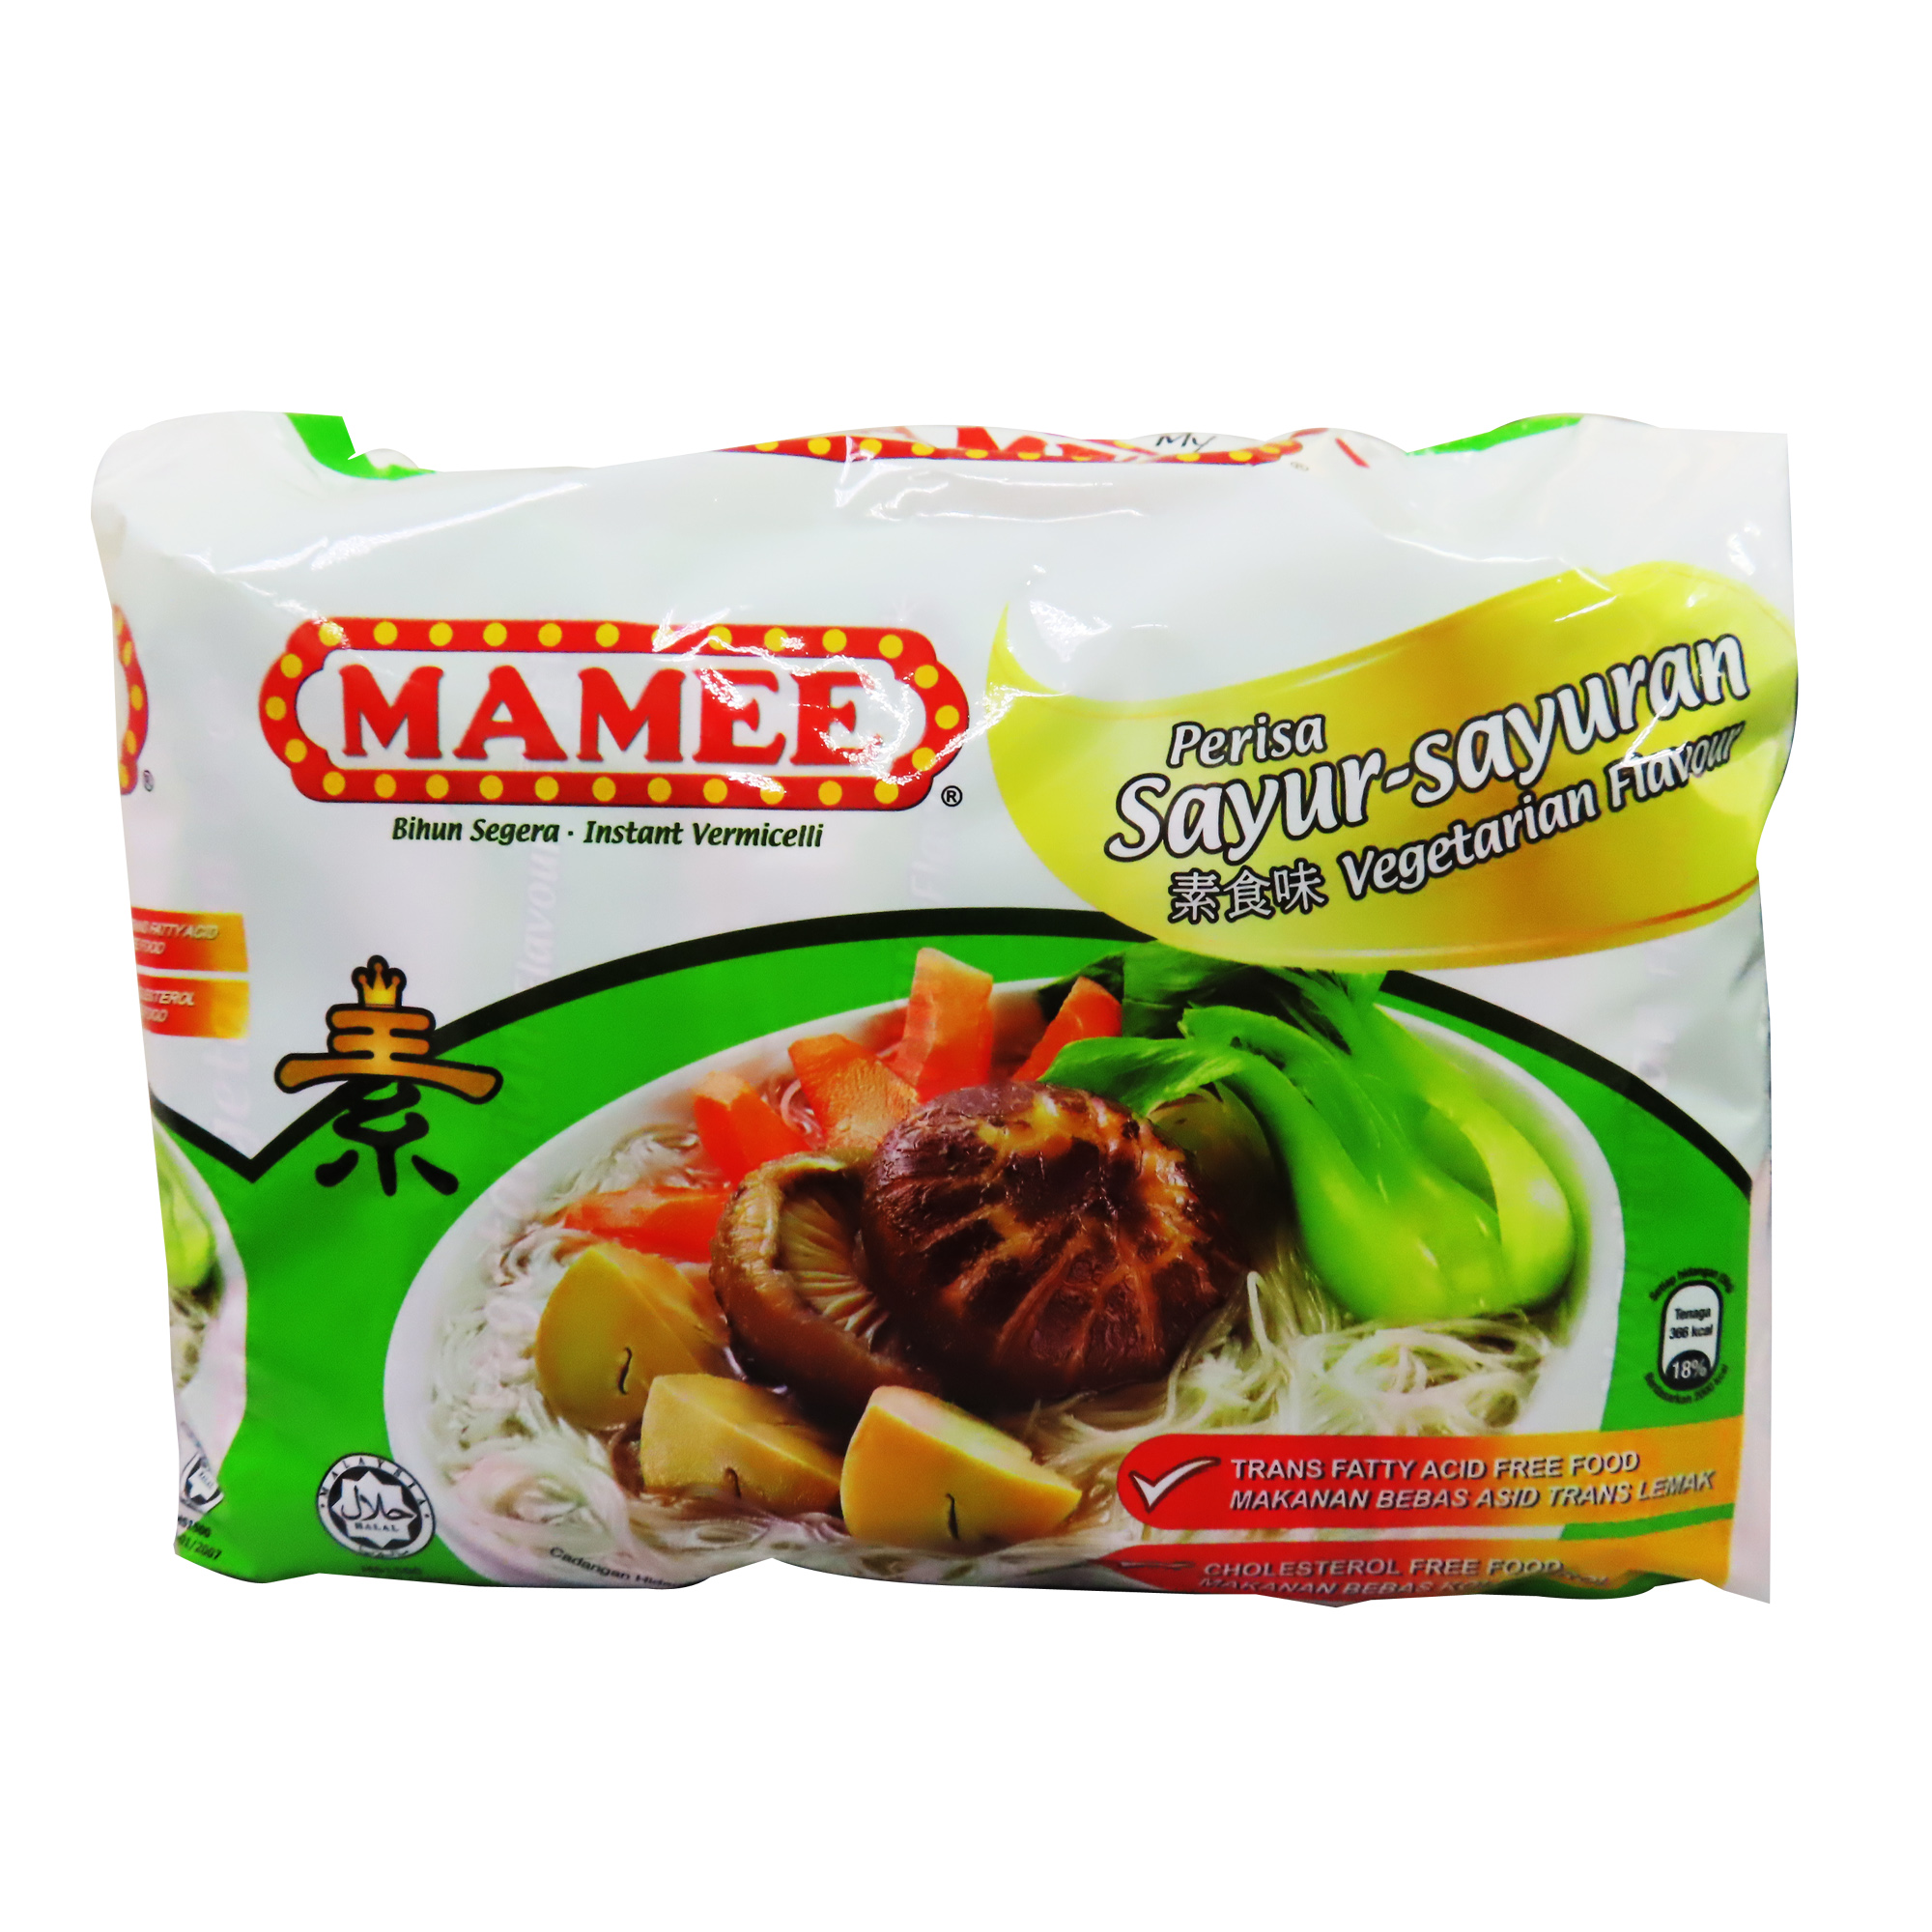 Image Mamee Rice Noodle 妈咪米粉 290grams